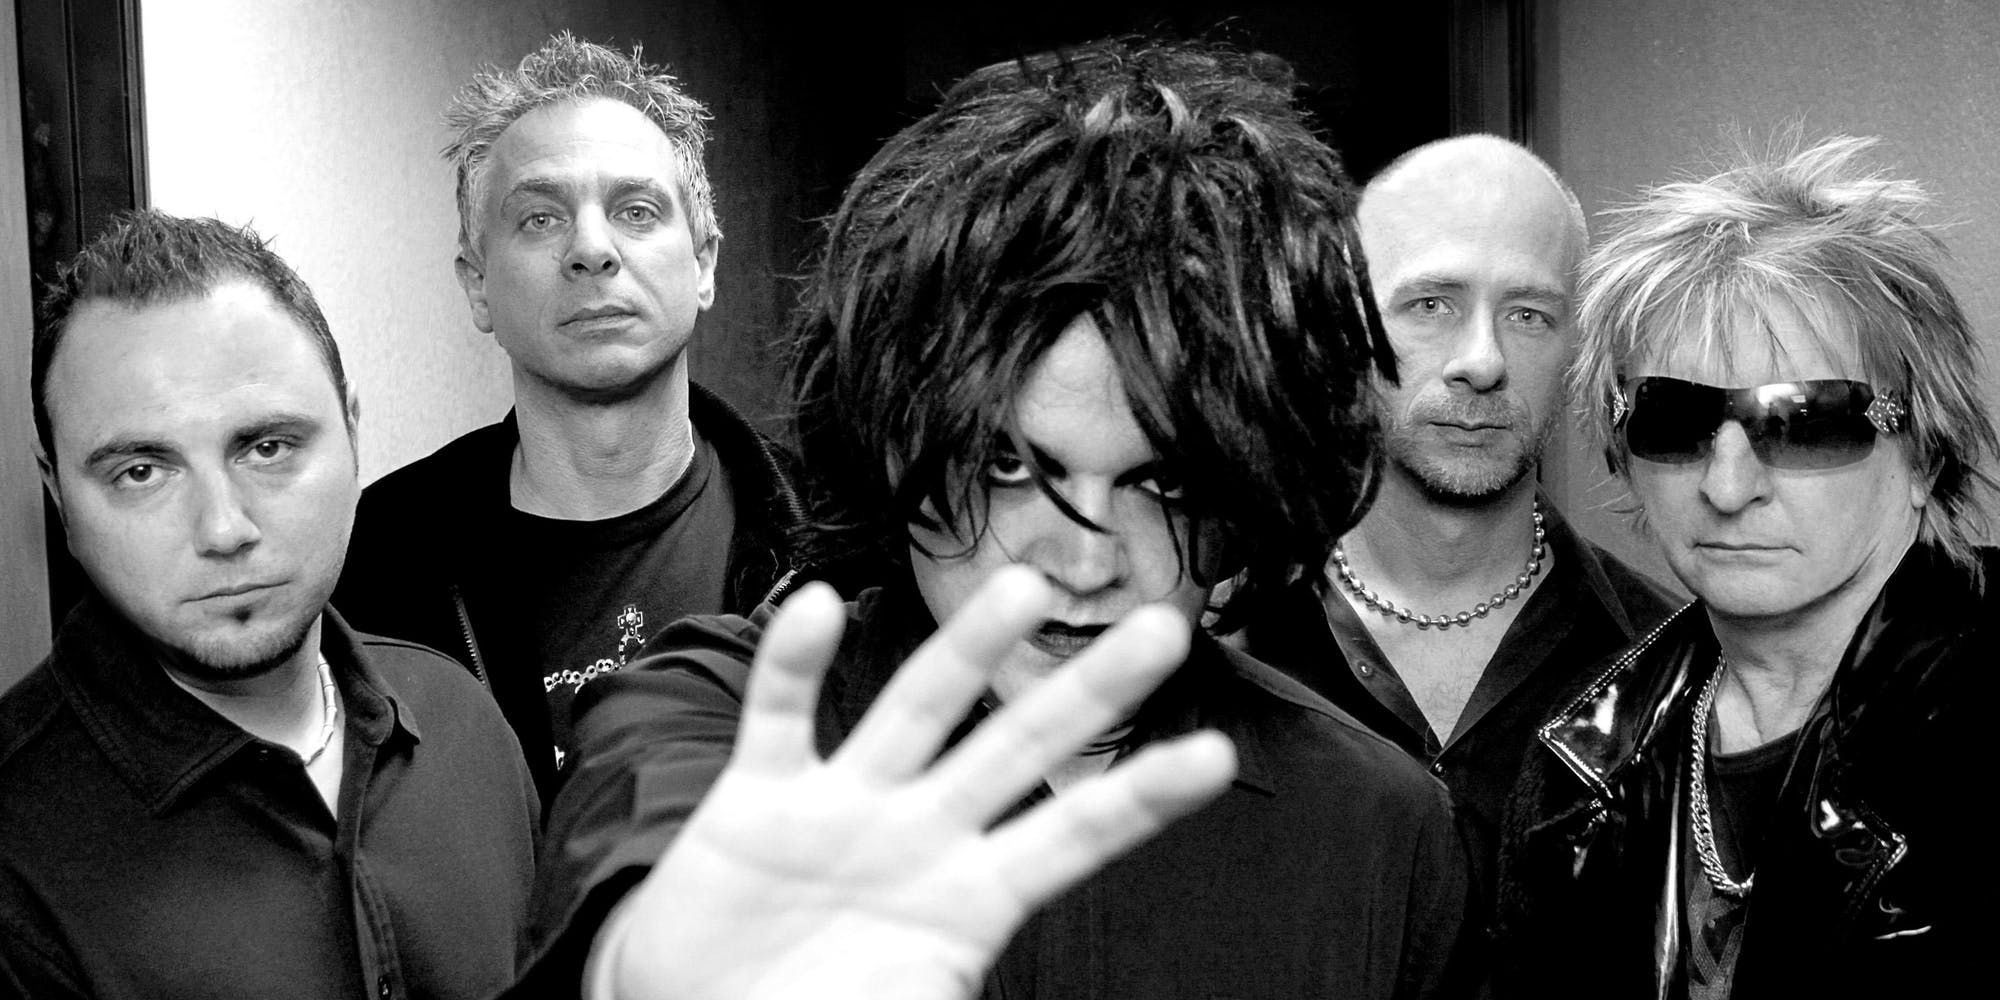 Promo image of Le Cure: The Cure Tribute